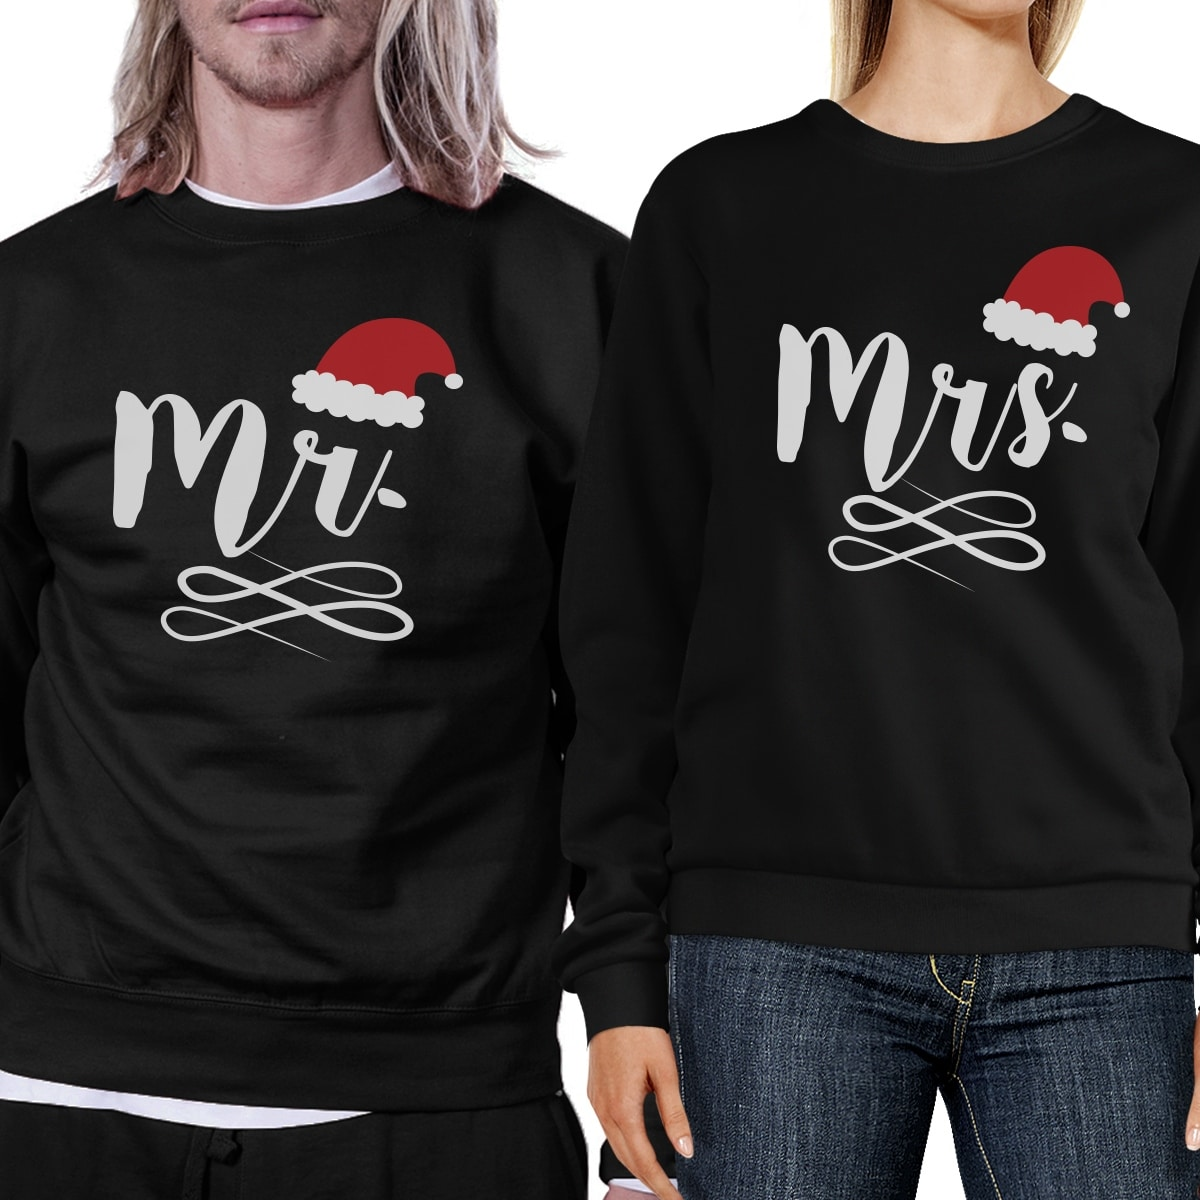 Shop Mr And Mrs Christmas Couple Sweatshirts Holiday Gifts For ...